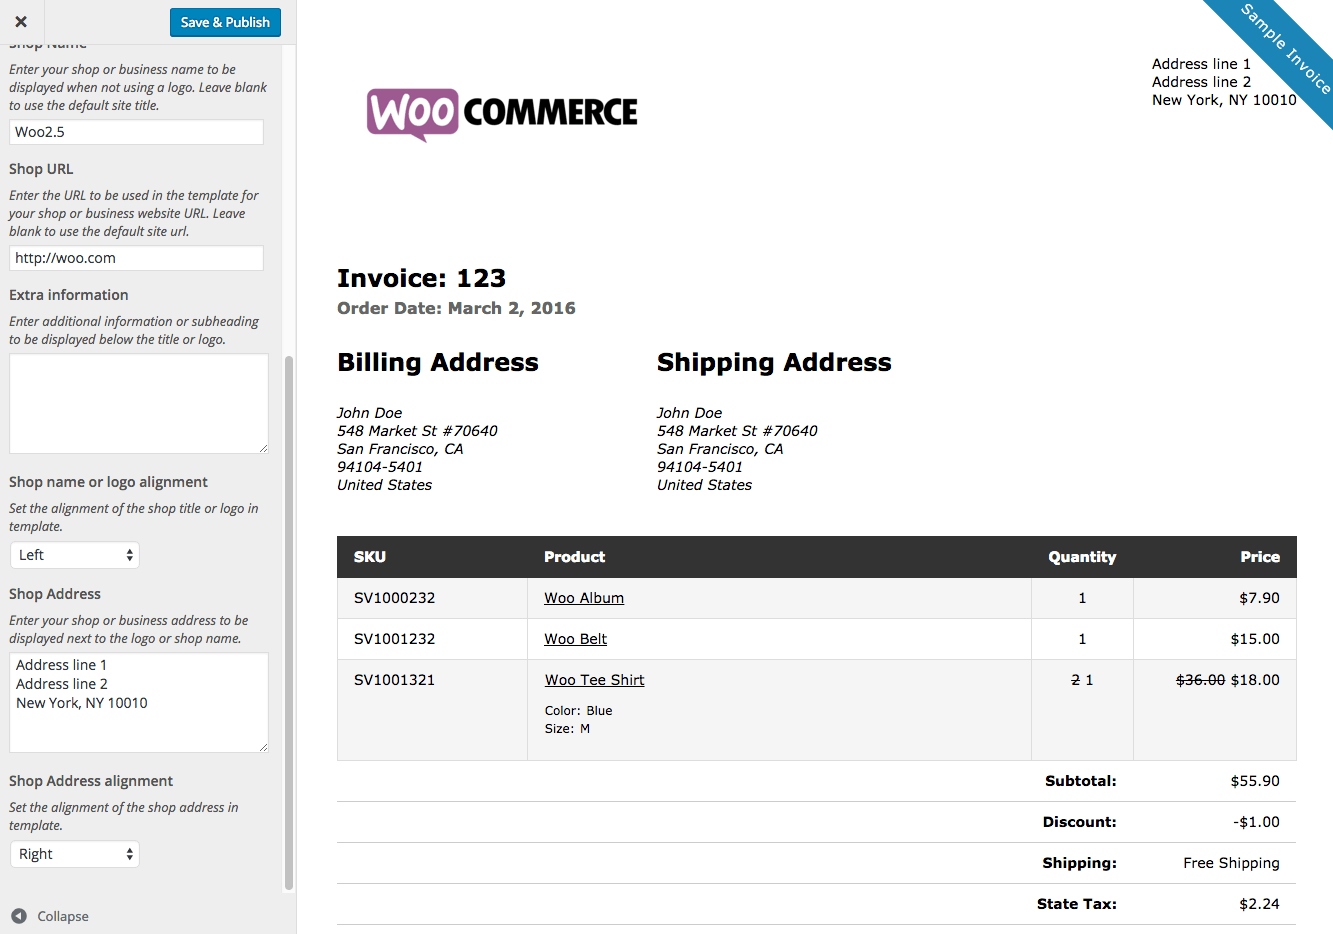 Weirdmailus  Terrific Woocommerce Print Invoices Amp Packing Lists  Woocommerce Docs With Luxury Woocommerce Print Invoices  Packing Lists Customizer With Nice How To Write A Receipt For A Donation Also Verifone Receipt Paper In Addition Google Email Read Receipt And Read Receipt In Mac Mail As Well As Rent Security Deposit Receipt Additionally Billing Receipts From Docswoocommercecom With Weirdmailus  Luxury Woocommerce Print Invoices Amp Packing Lists  Woocommerce Docs With Nice Woocommerce Print Invoices  Packing Lists Customizer And Terrific How To Write A Receipt For A Donation Also Verifone Receipt Paper In Addition Google Email Read Receipt From Docswoocommercecom